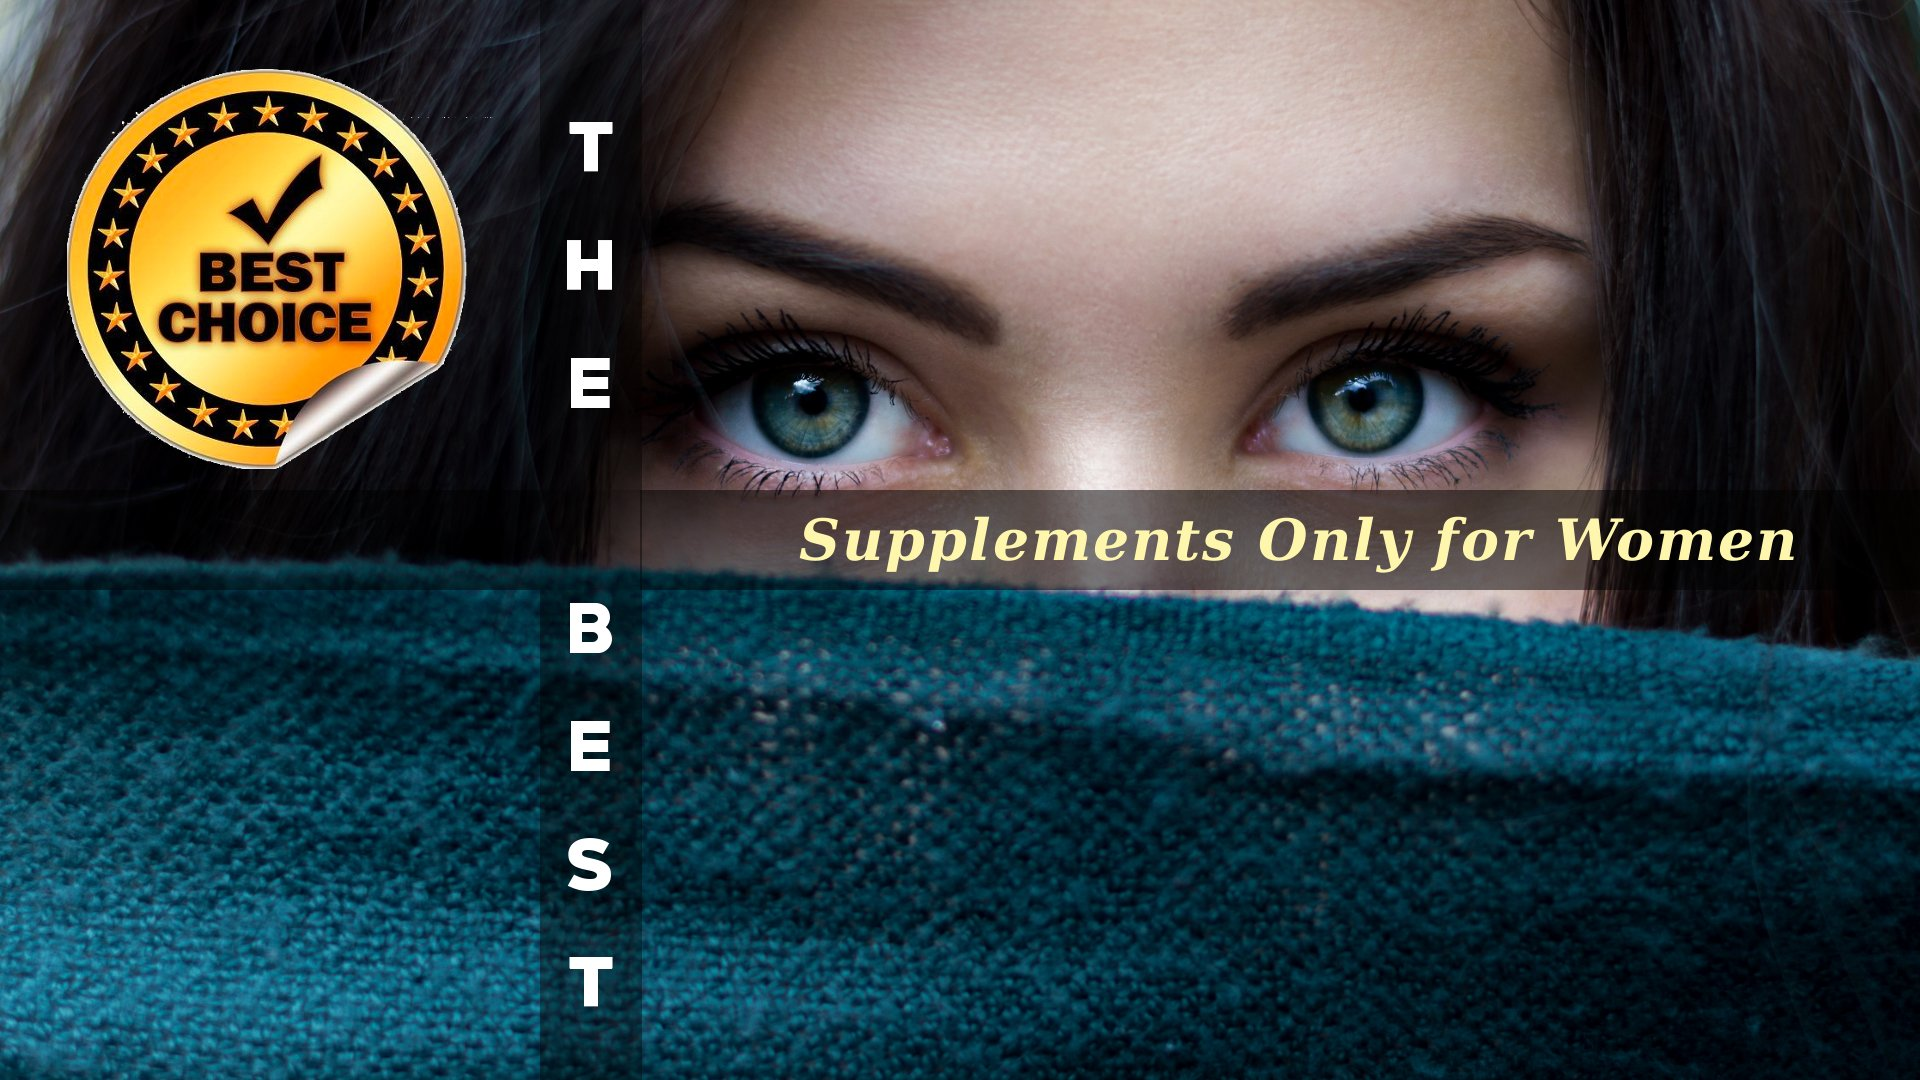 The Supplements Only for Women